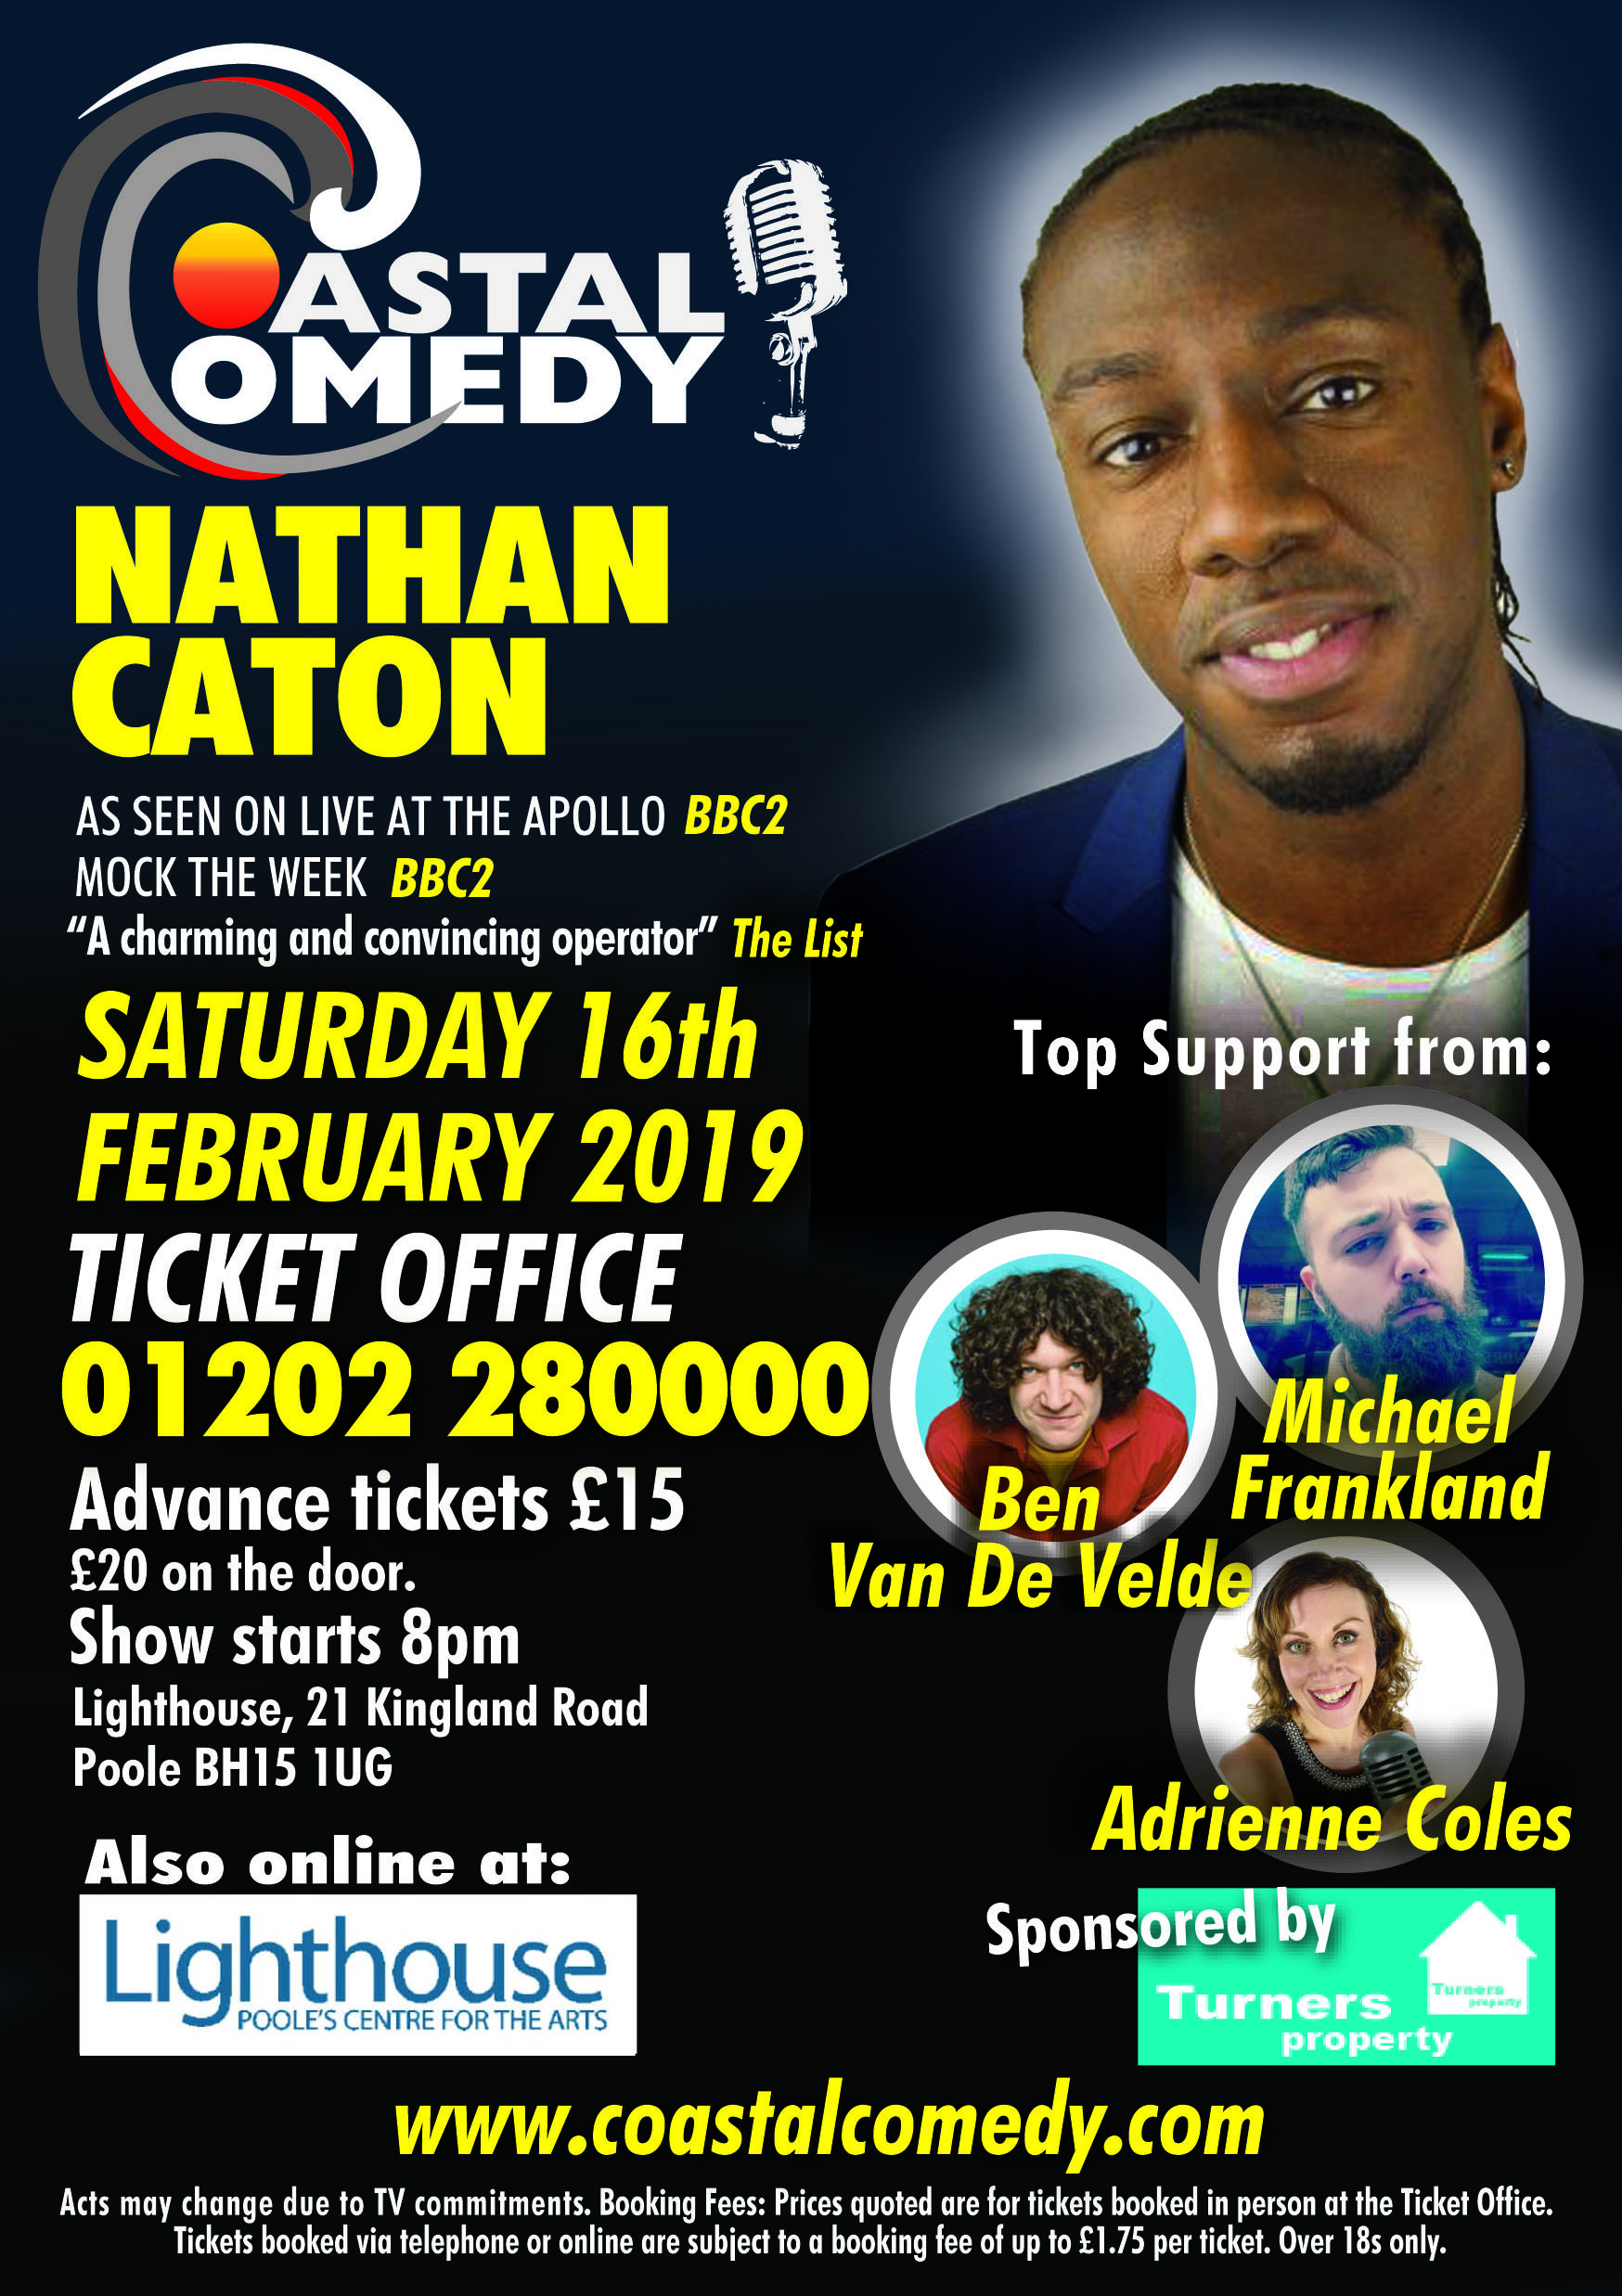 nathan caton, lighthouse, comedienne, comic, entertainment, saturday night, night life,